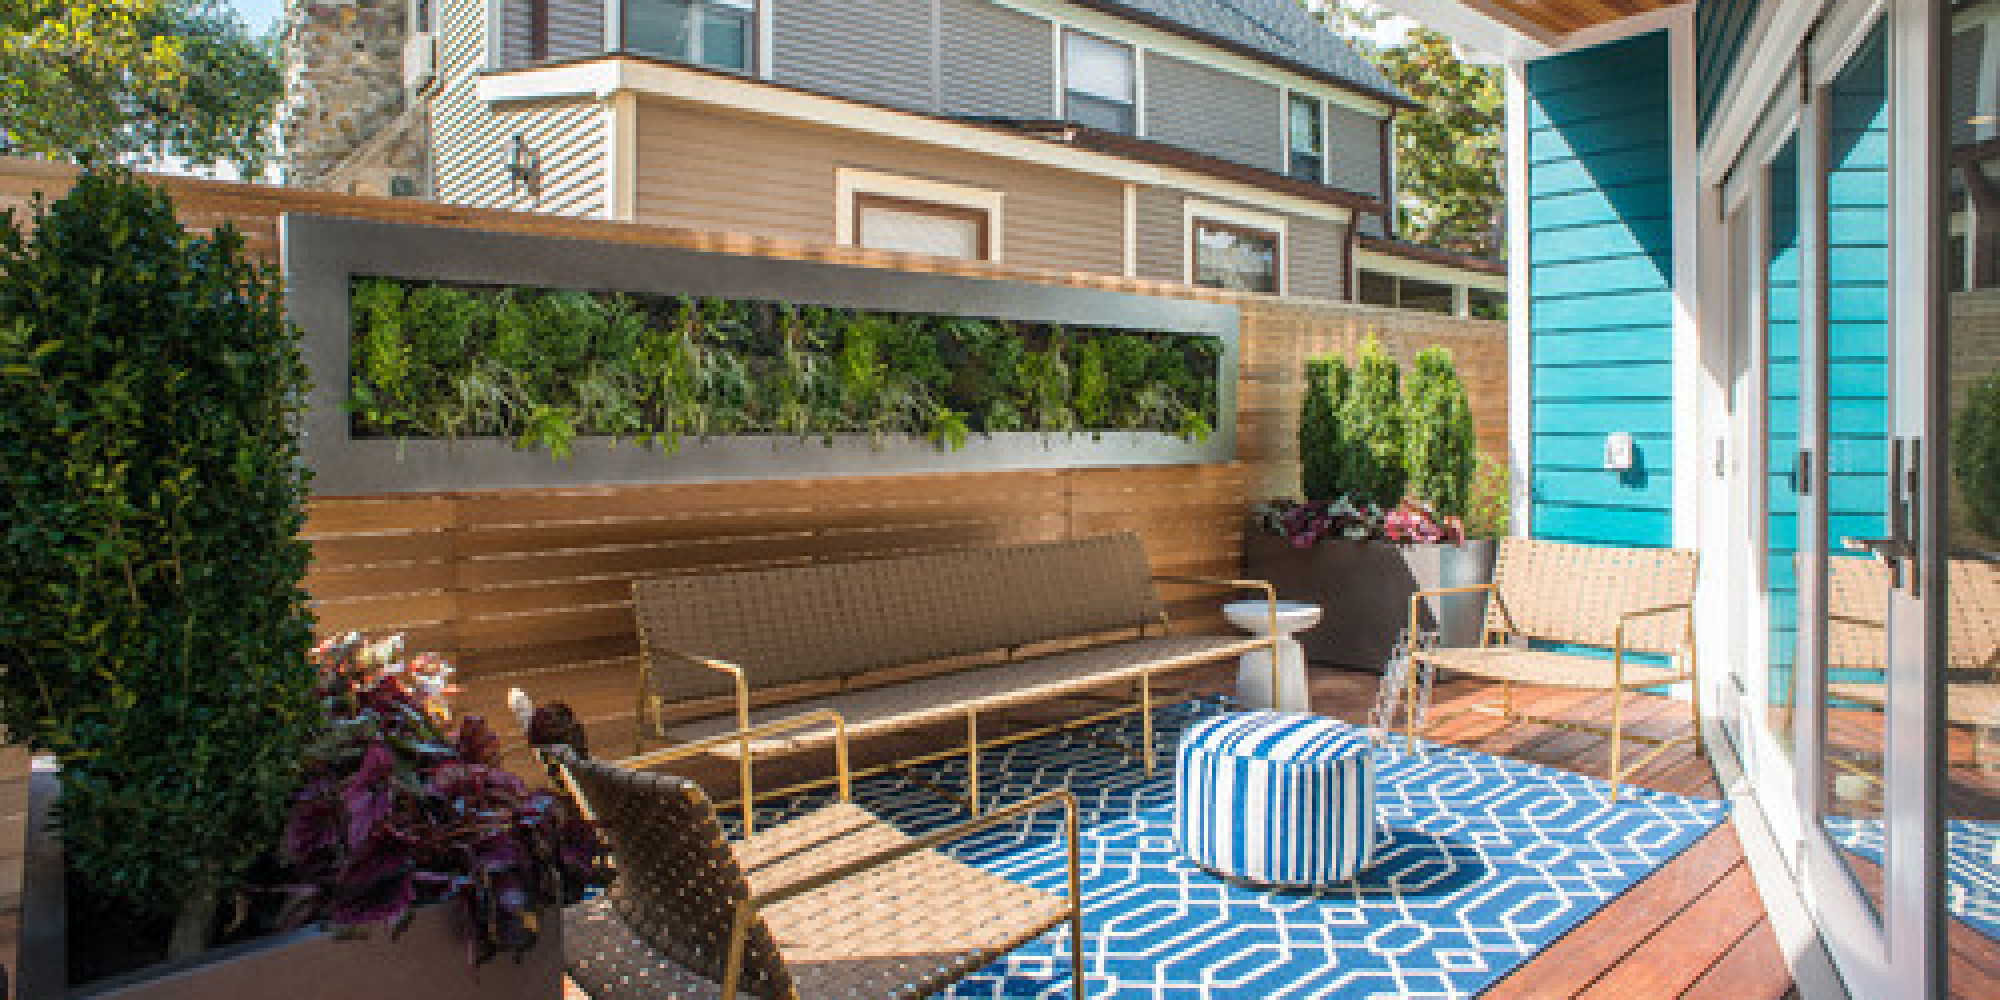 16 Ways to Get More from Your Small Backyard | HuffPost on Small Outdoor Yard Ideas id=47367